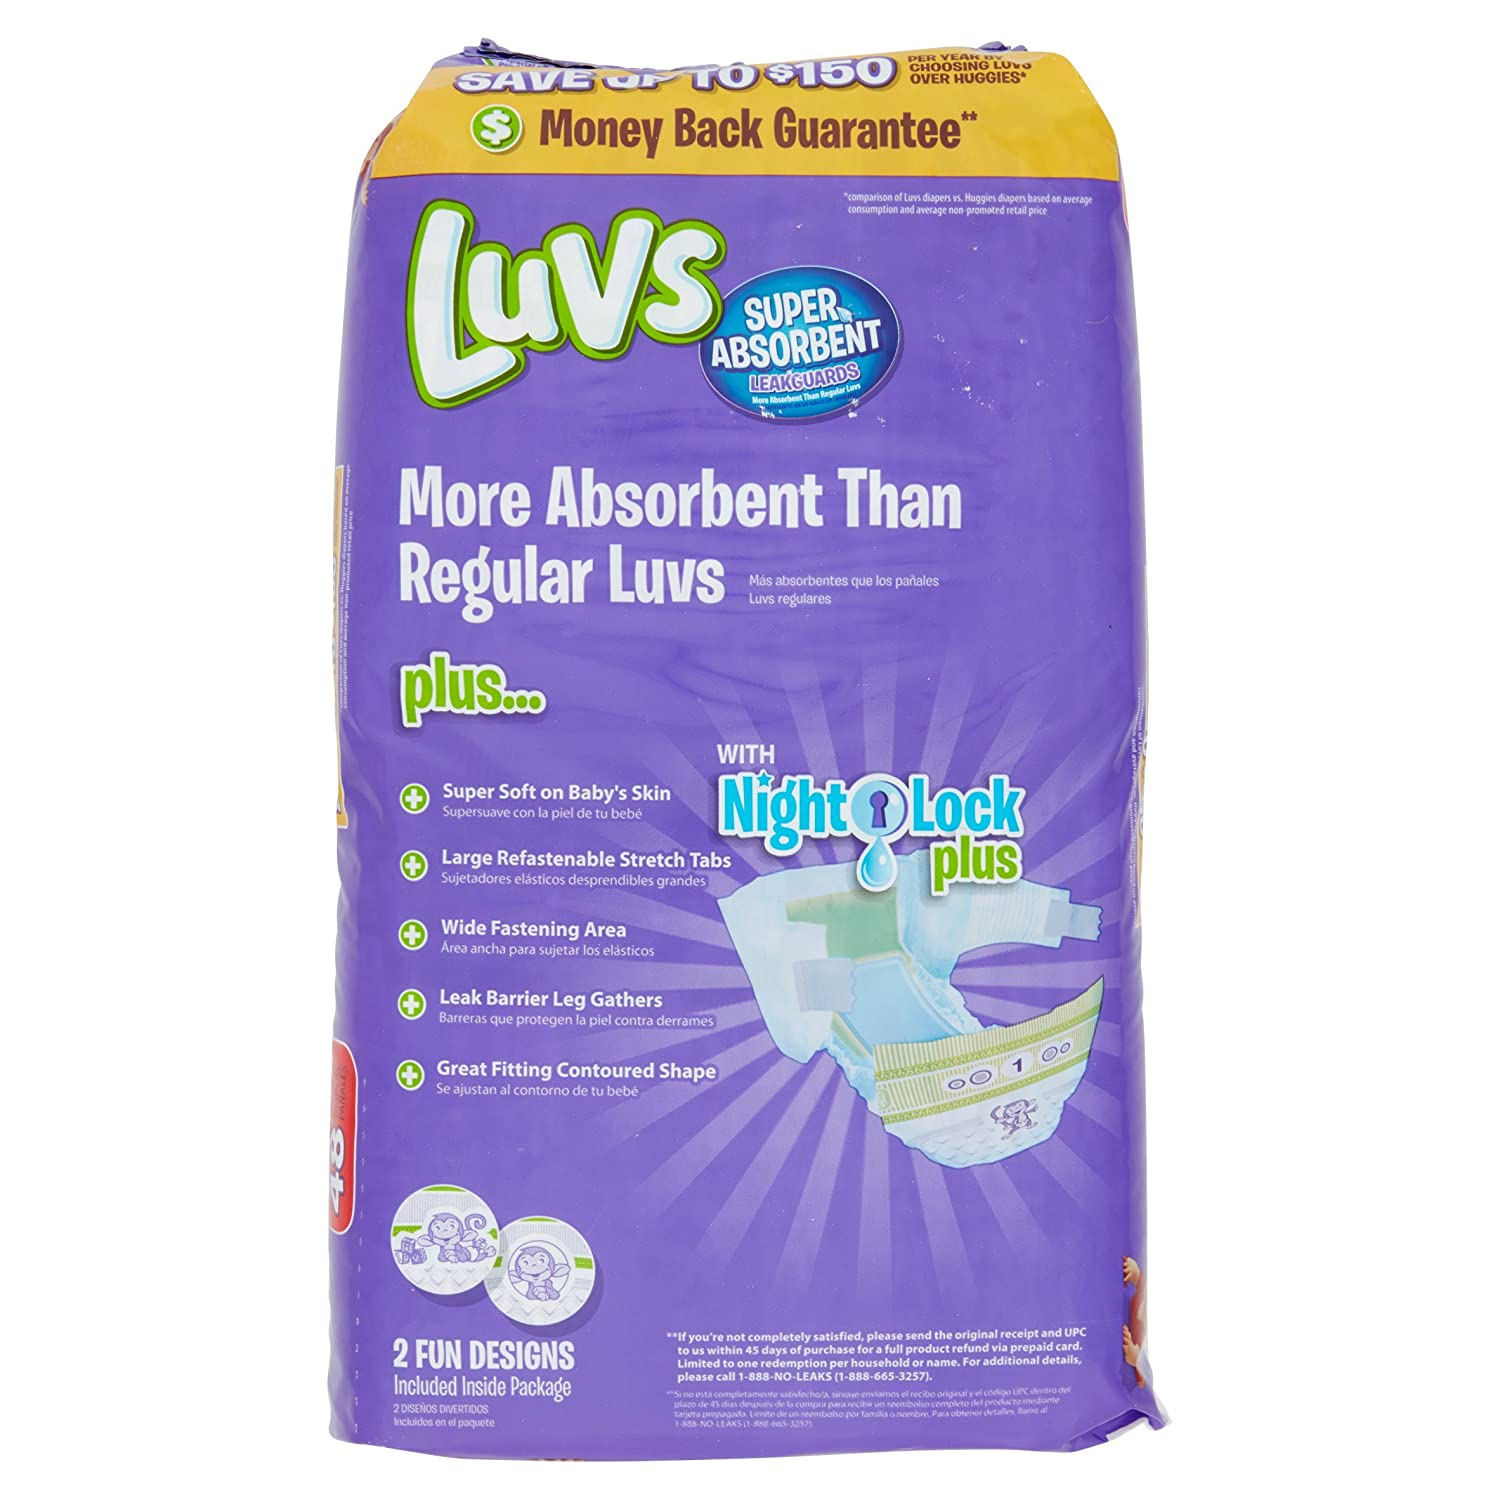 Amazon.com: Branded Luvs Super Absorbent Leakguards Diapers, Size 1, 48 Diapers , Weight 8-14lbs - Branded Diapers with fast delivery (Soft and Comfortable ...